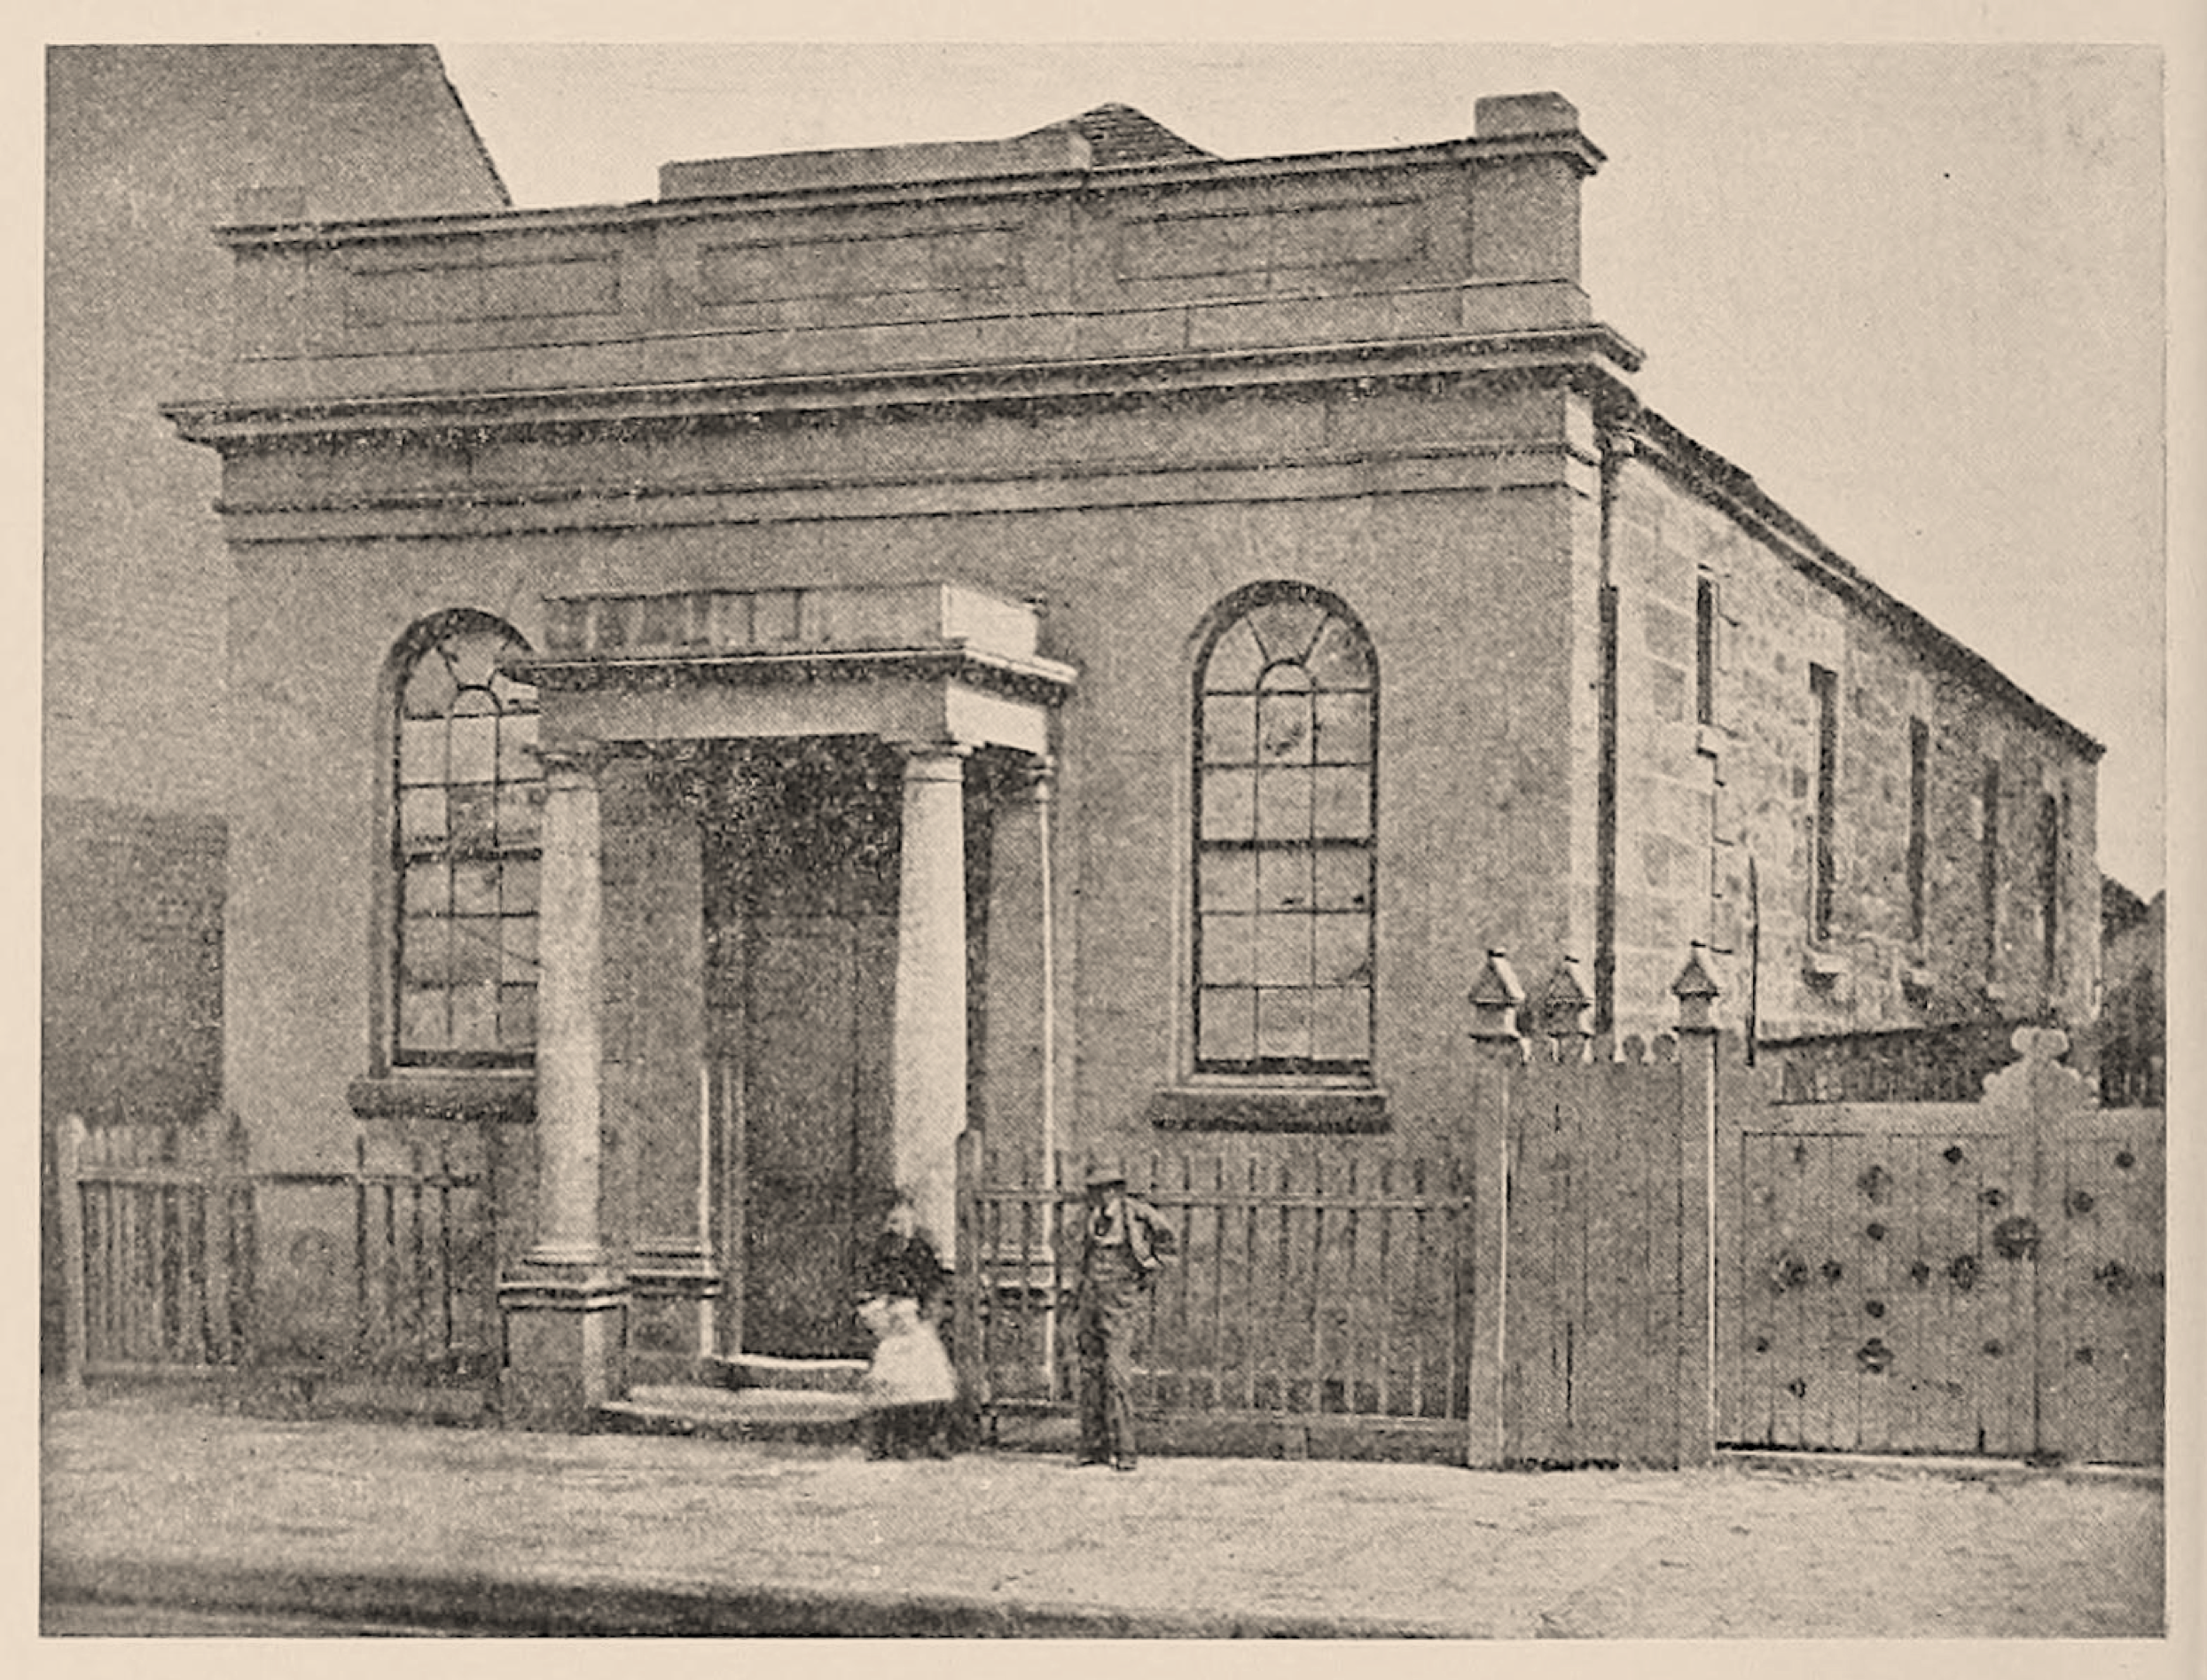 First Wesleyan Chapel, Princes Street Chapel, The Rocks, Methodist, St. John's Cemetery Project, Old Parramattans, Reverend Samuel Leigh, Catherine Leigh